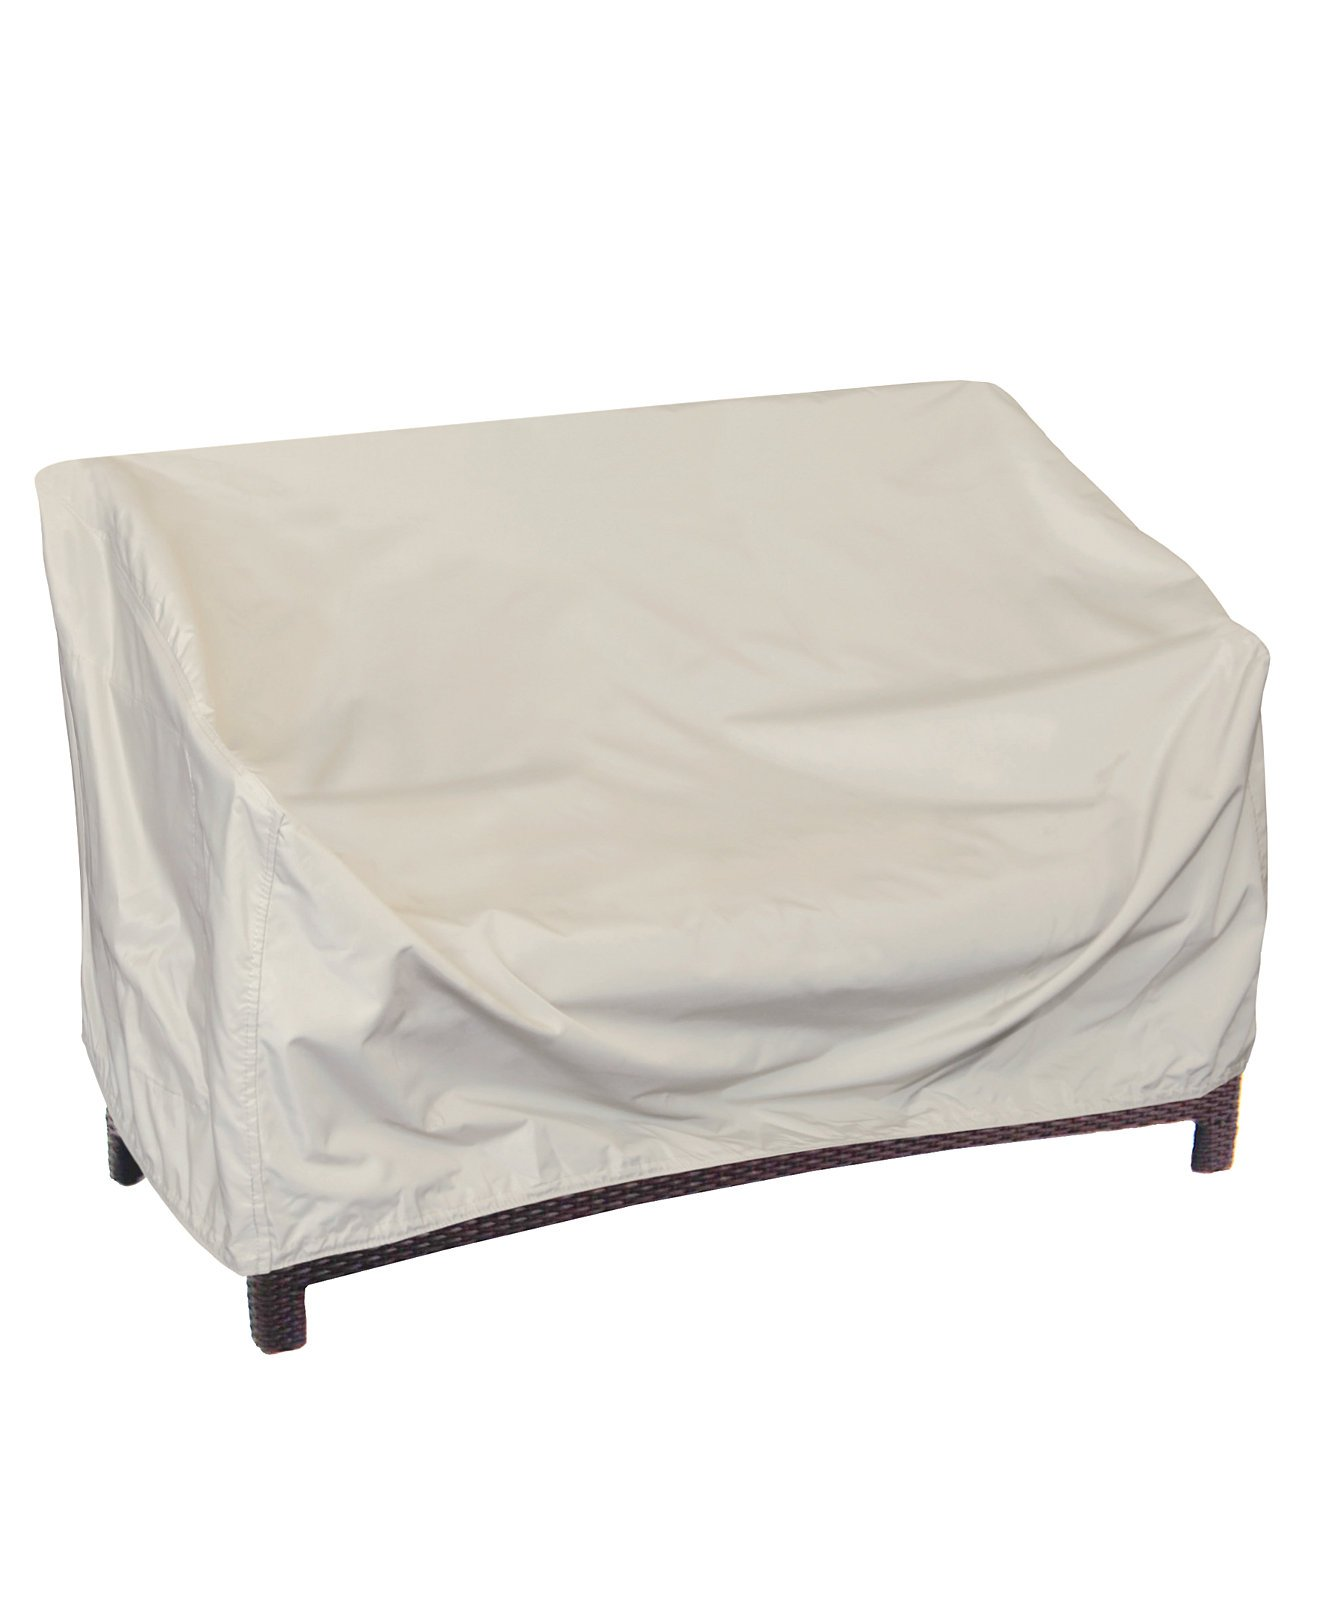 Outdoor Patio Furniture Kitchener: Best Patio Furniture Cover